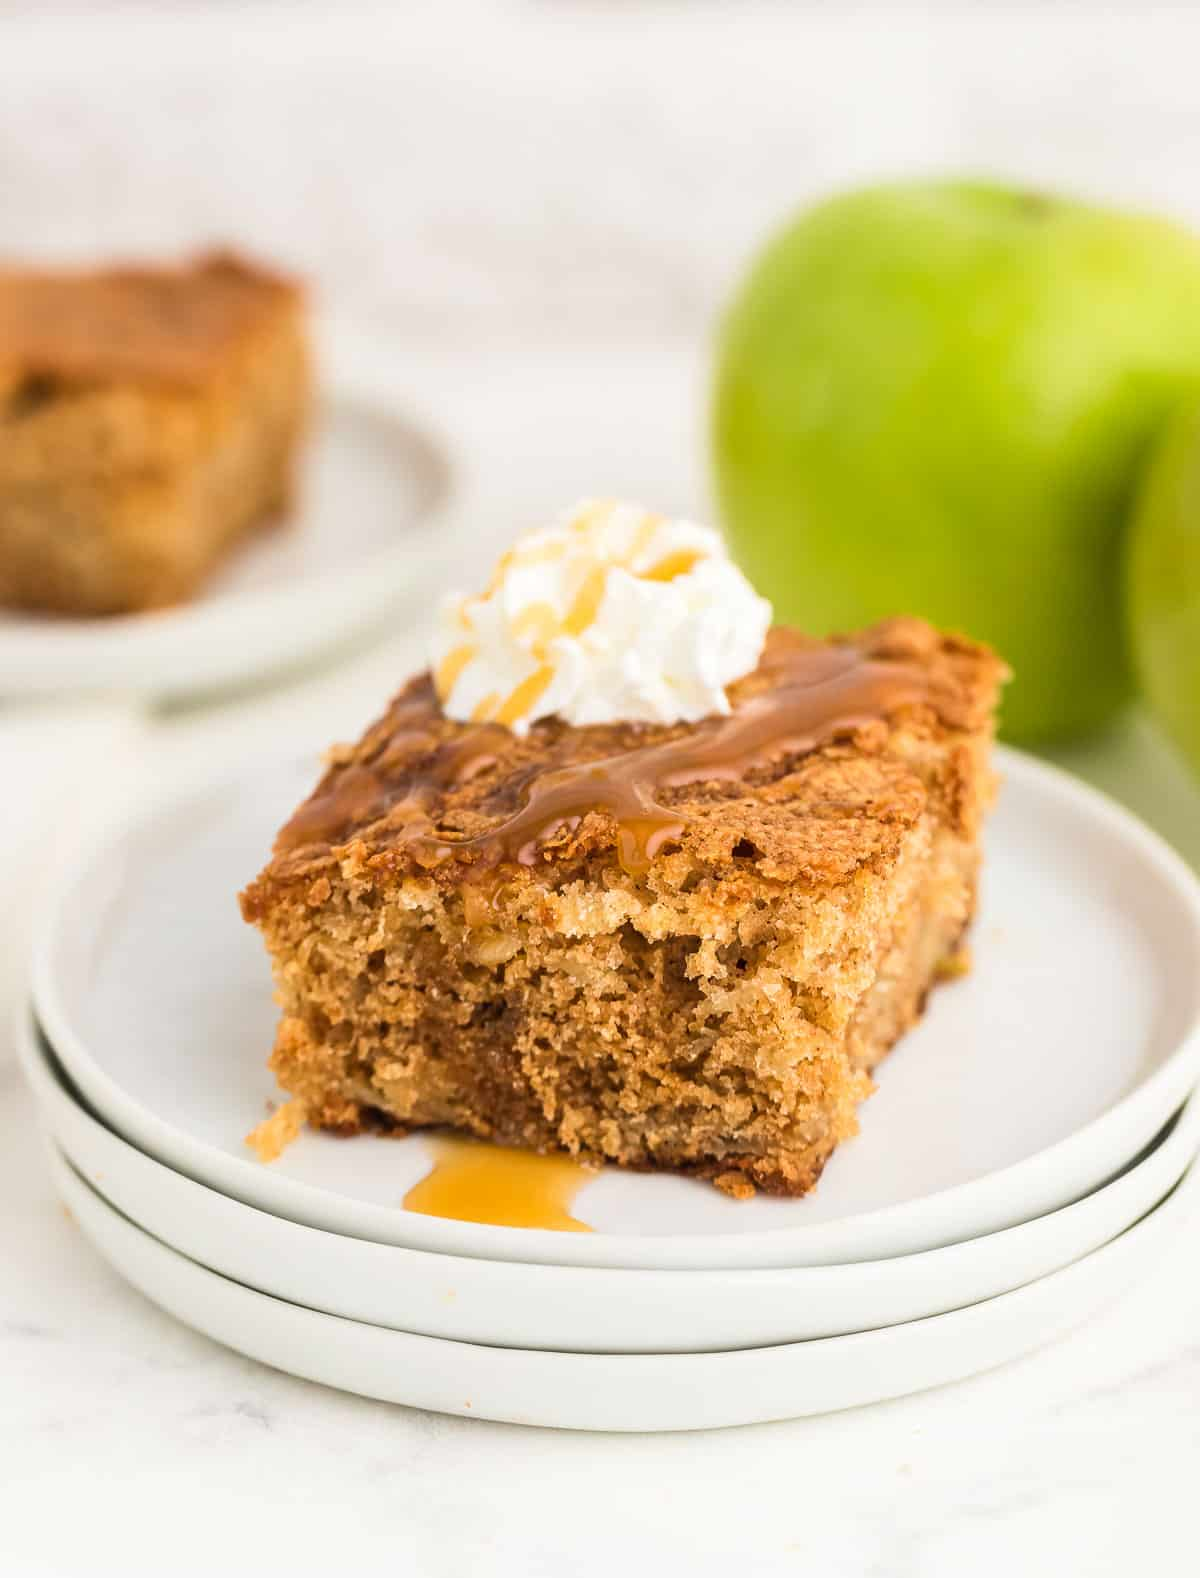 a slice of Apple Cake with cream and caramel sauce